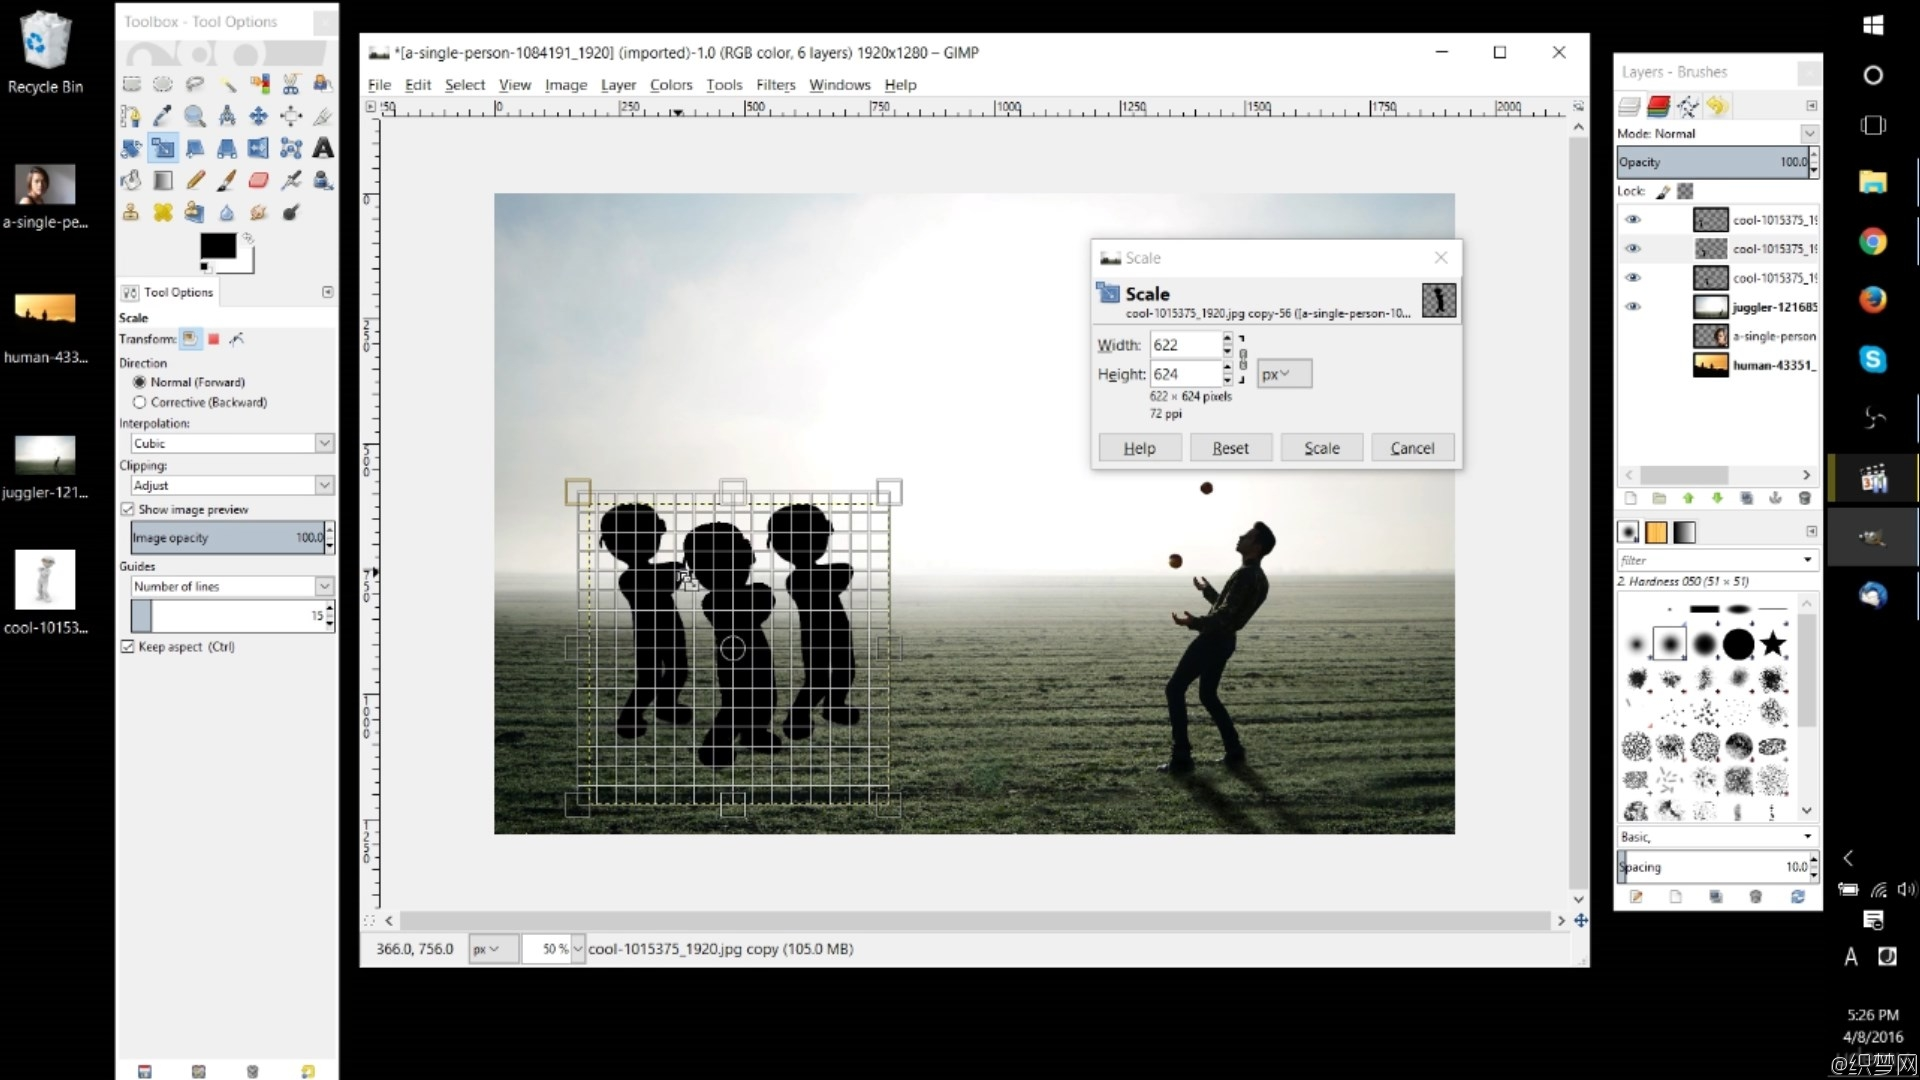 绘画软件GIMP 2.8入门教程 - Introduction to GIMP 2.8 Tutorials for Beginners